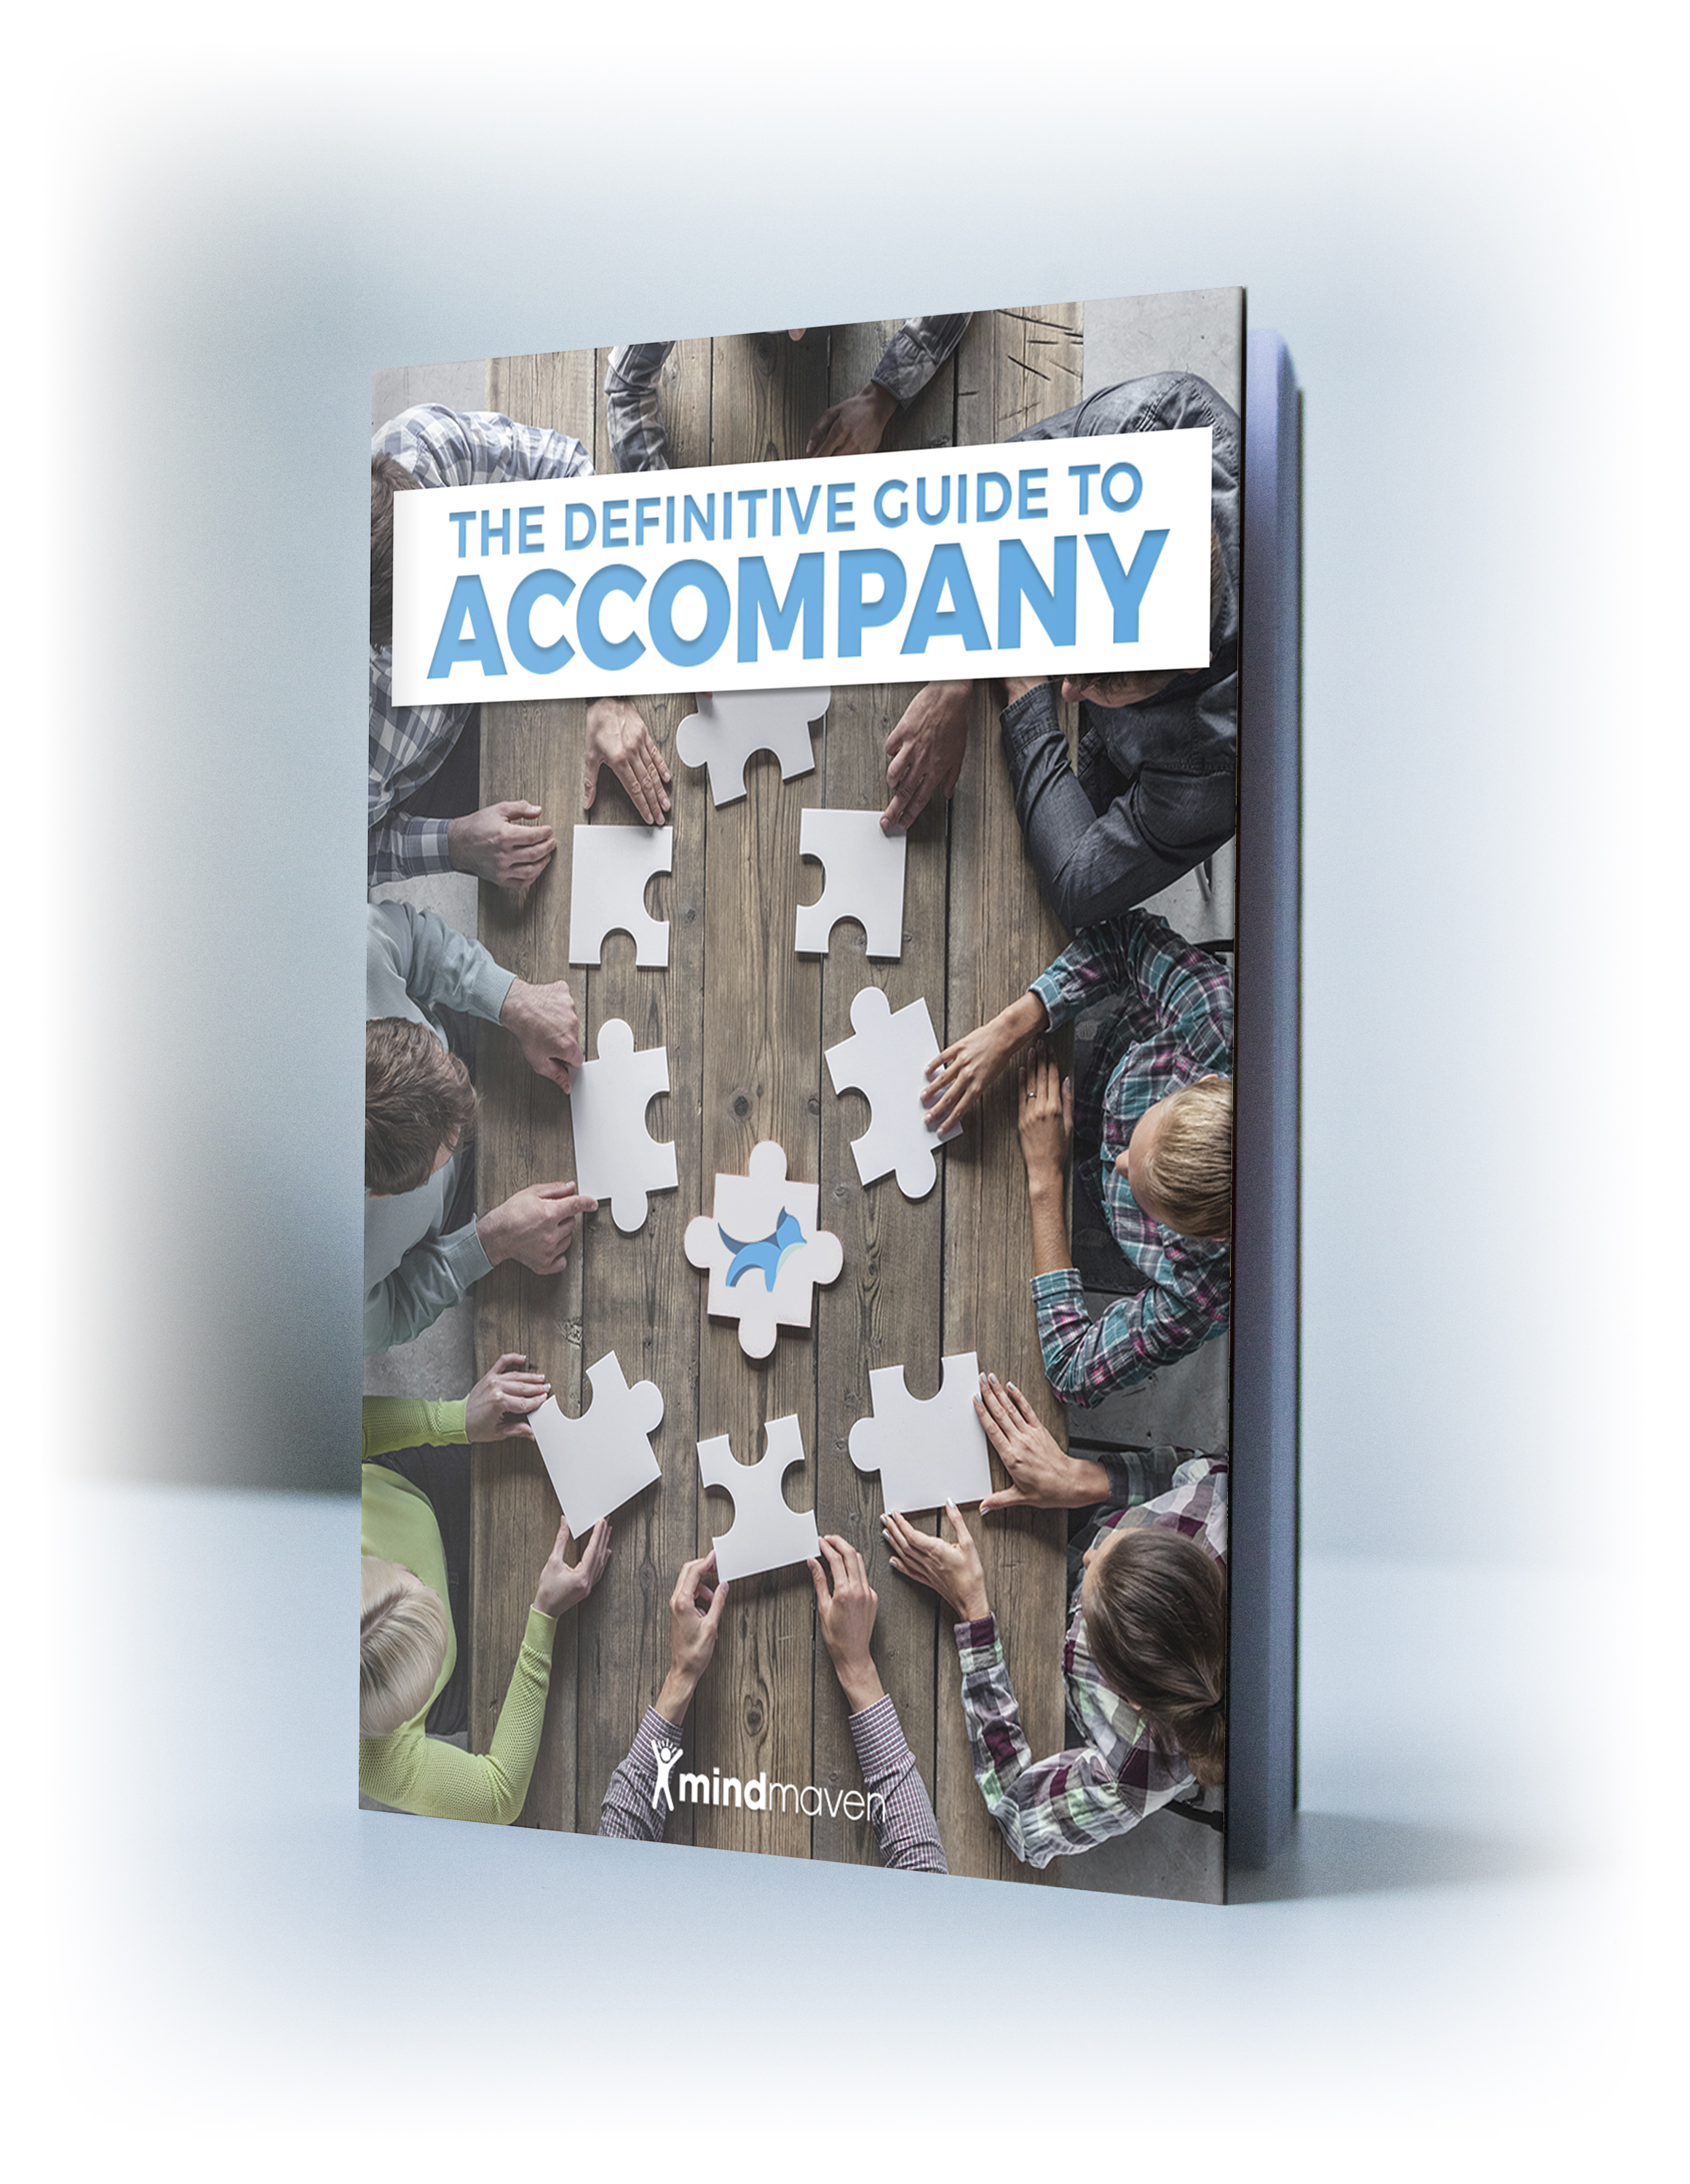 Free Download: The Definitive Guide to Accompany: How to Use Accompany to Generate Breakthrough Opportunities From Your Network